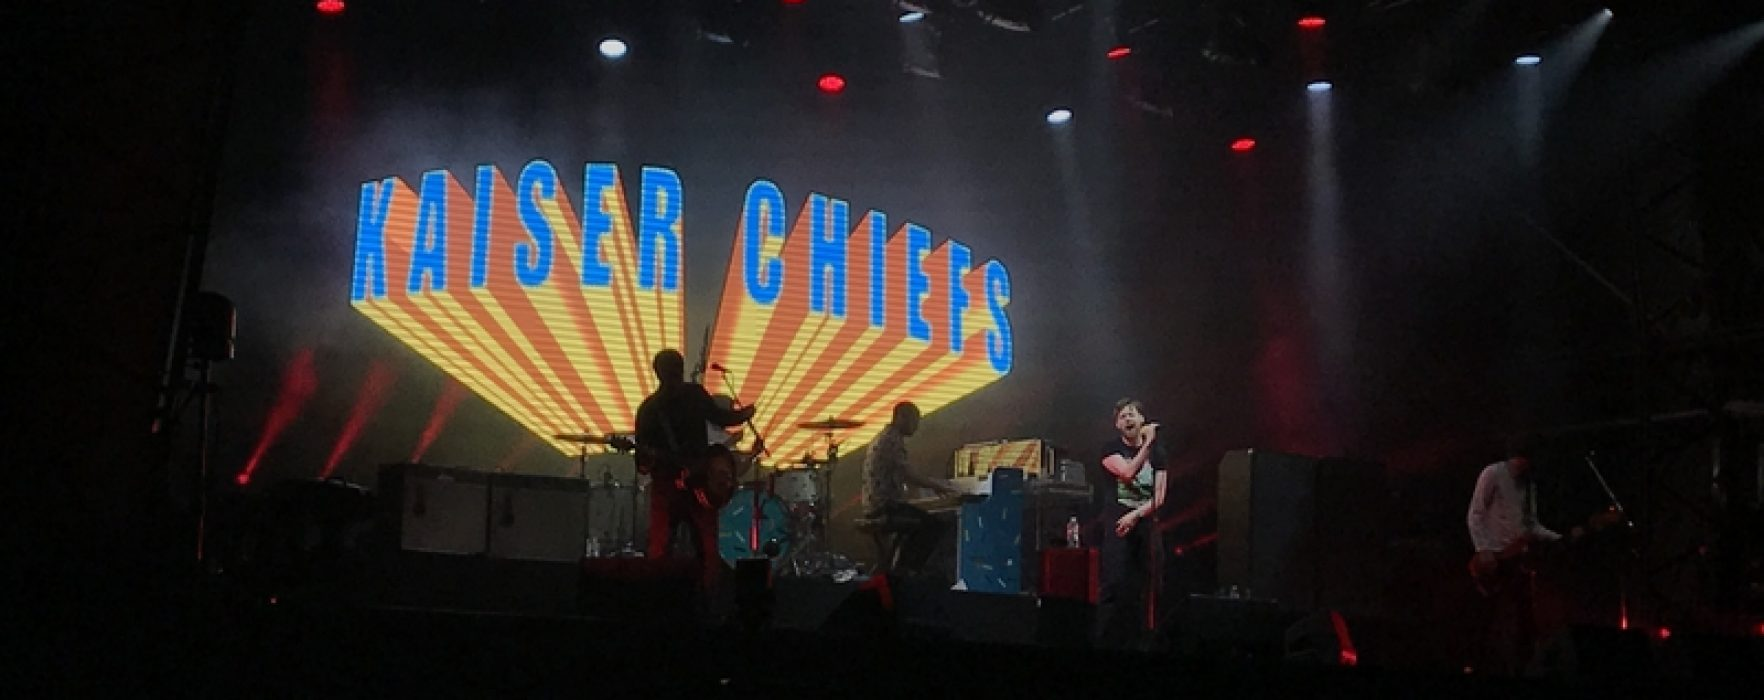 REVIEW: An Evening with The Kaiser Chiefs at Aintree Racecourse